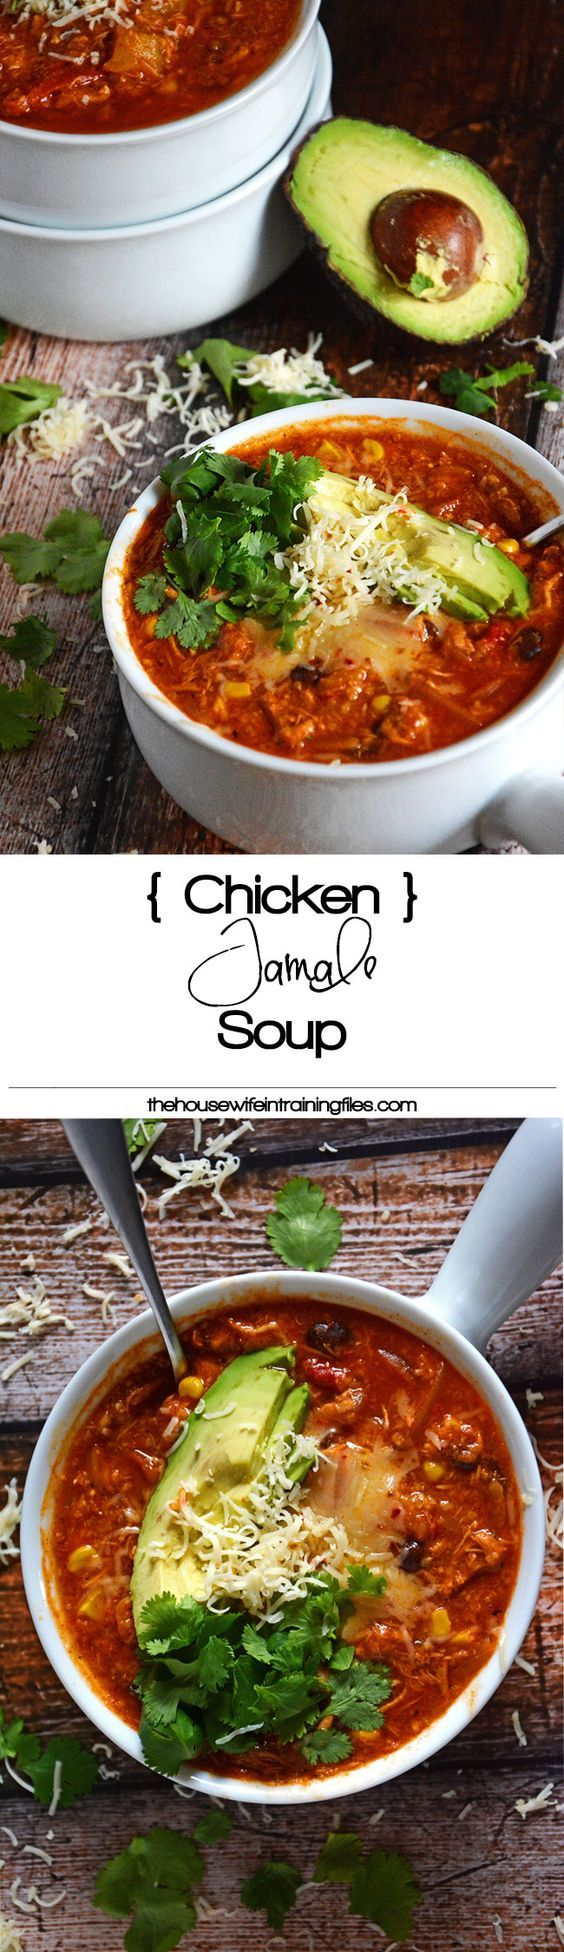 Best Healthy Chicken Tamale Soup   Enchilada, Easy, Quick, Cheesy, Stove Top, Skinny, On the Border, Spicy, Mexican